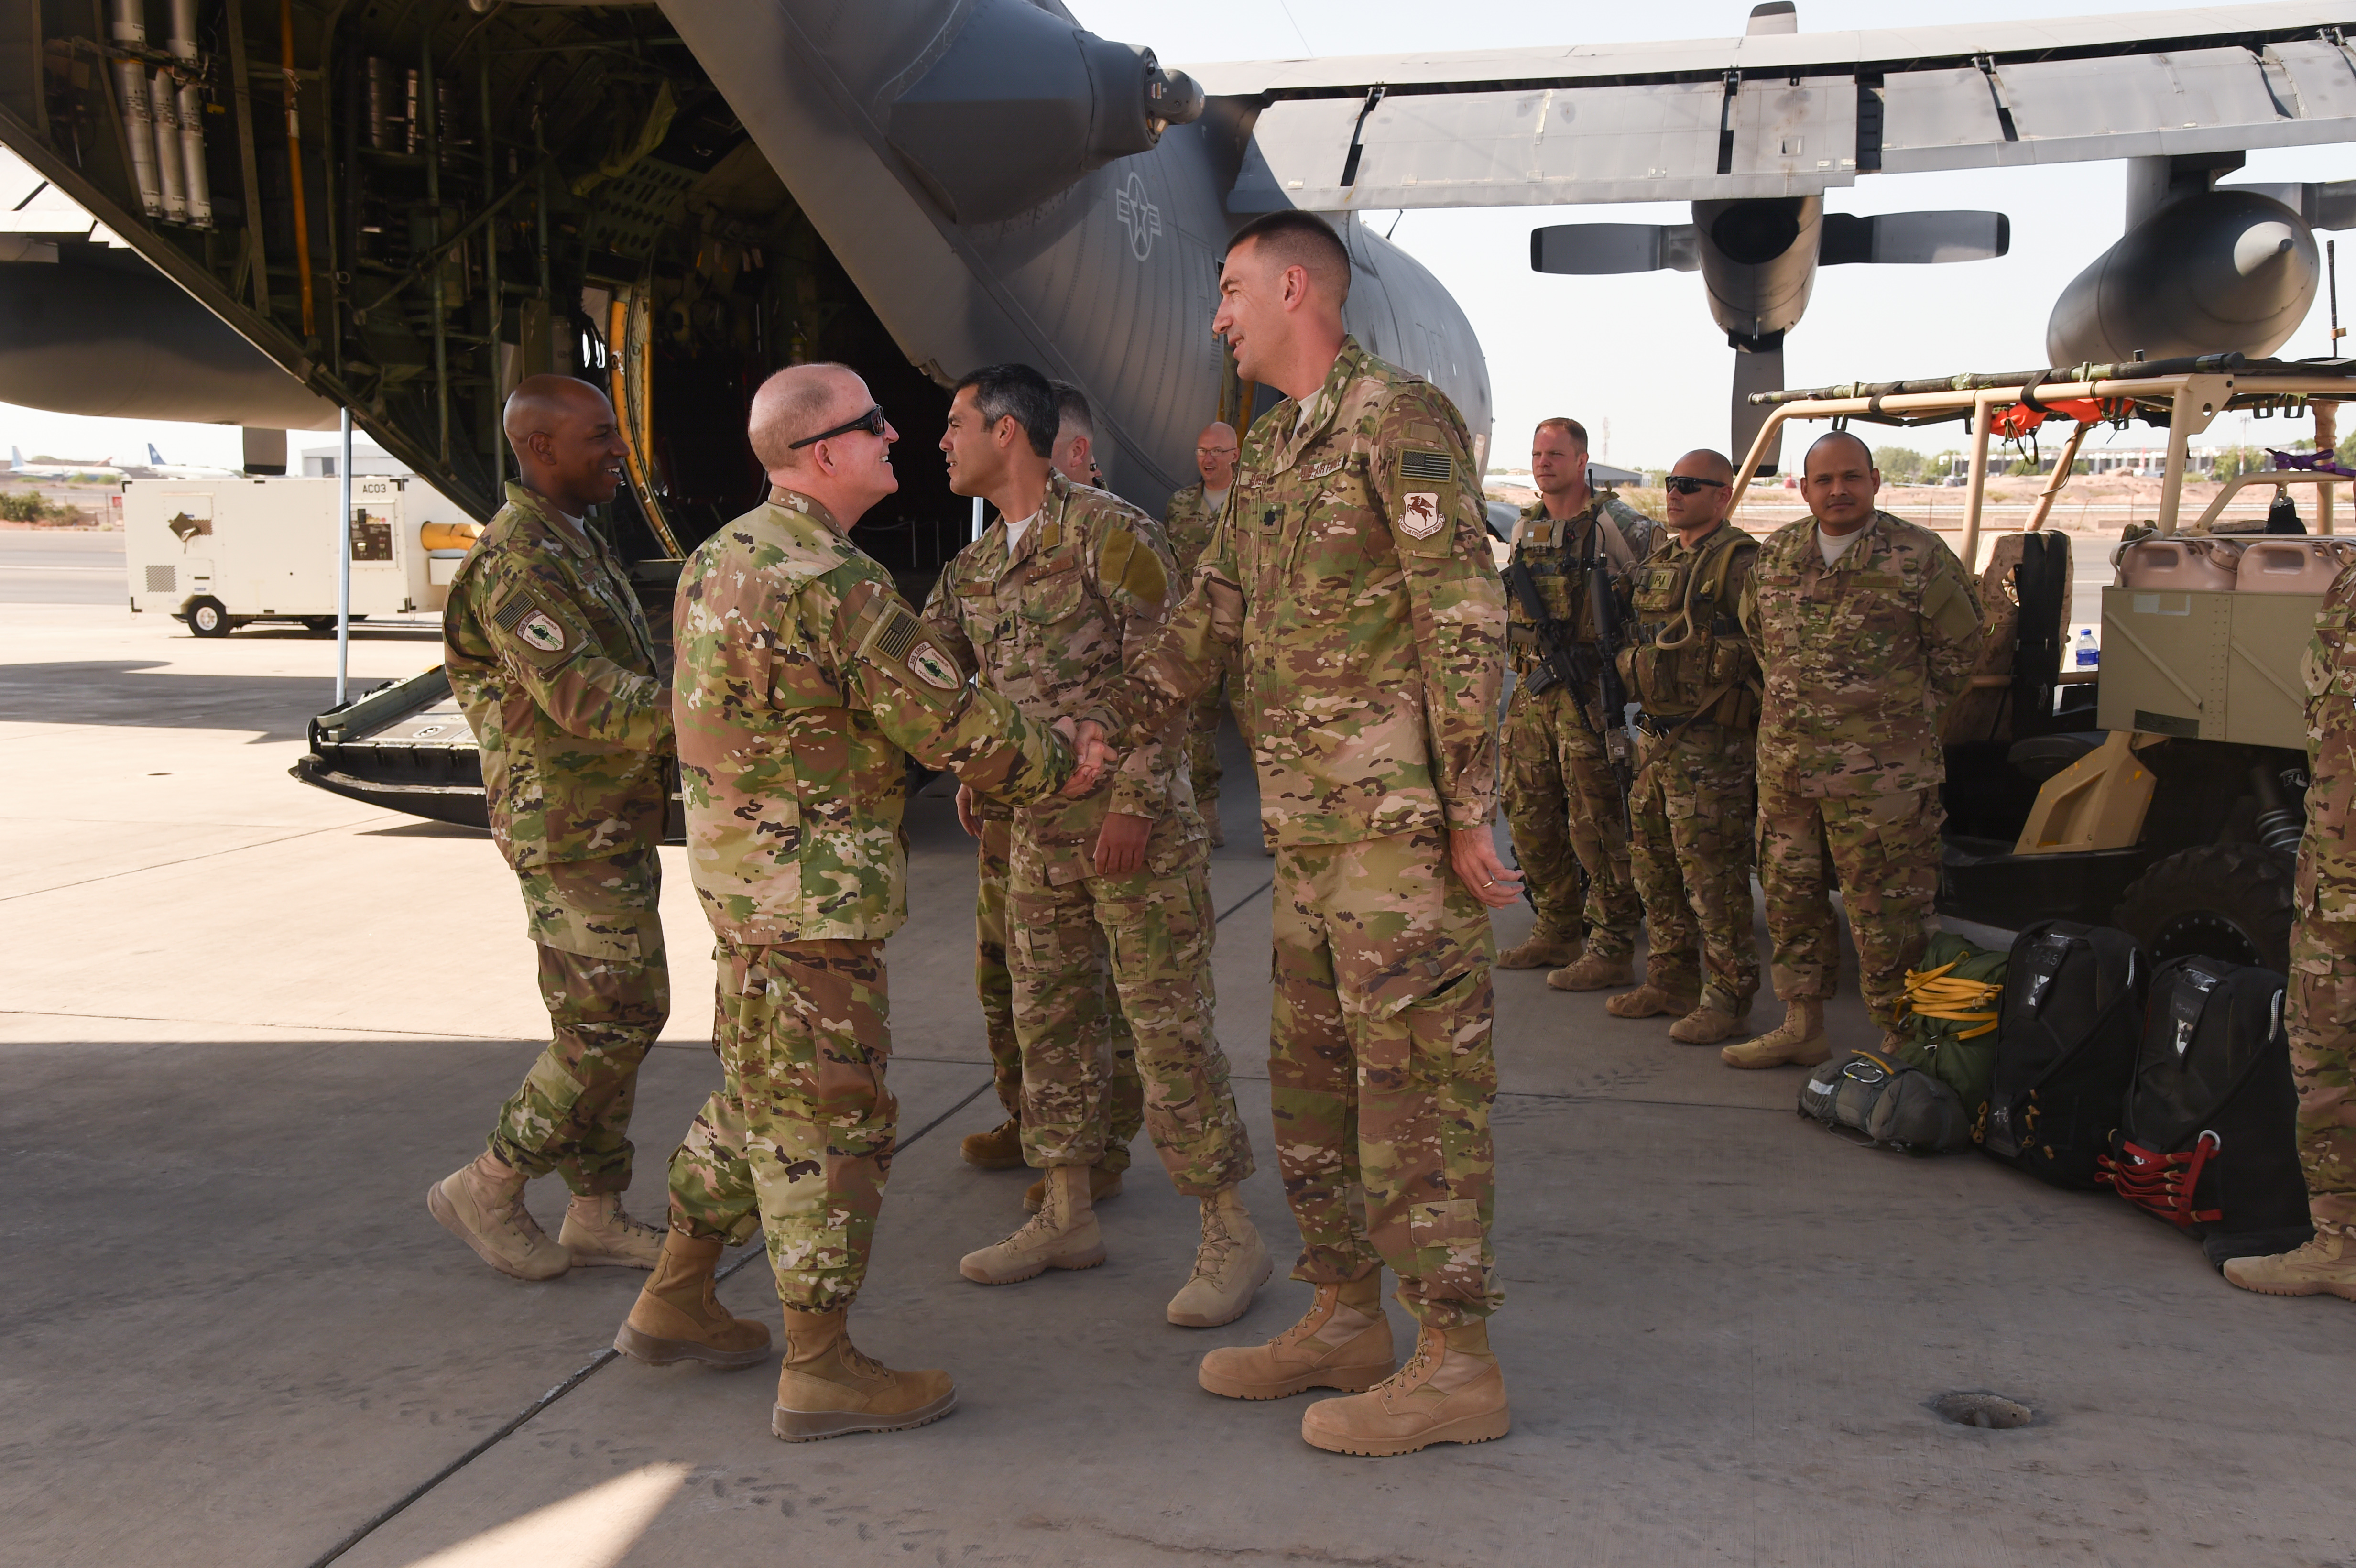 U.S. Air Force Vice Chief of Staff Gen. Stephen Wilson, greets Lt. Col. Timothy Bruner, commander 726th Expeditionary Air Base Squadron, right, during a visit to Camp Lemonnier, Djibouti, April 11, 2017. Wilson visited CJTF-HOA and other tenant commands with Wright to gain a better understanding of Air Force integration and missions in the U.S. Africa Command area of responsibility. (U.S. Air National Guard photo by Staff Sgt. Penny Snoozy)